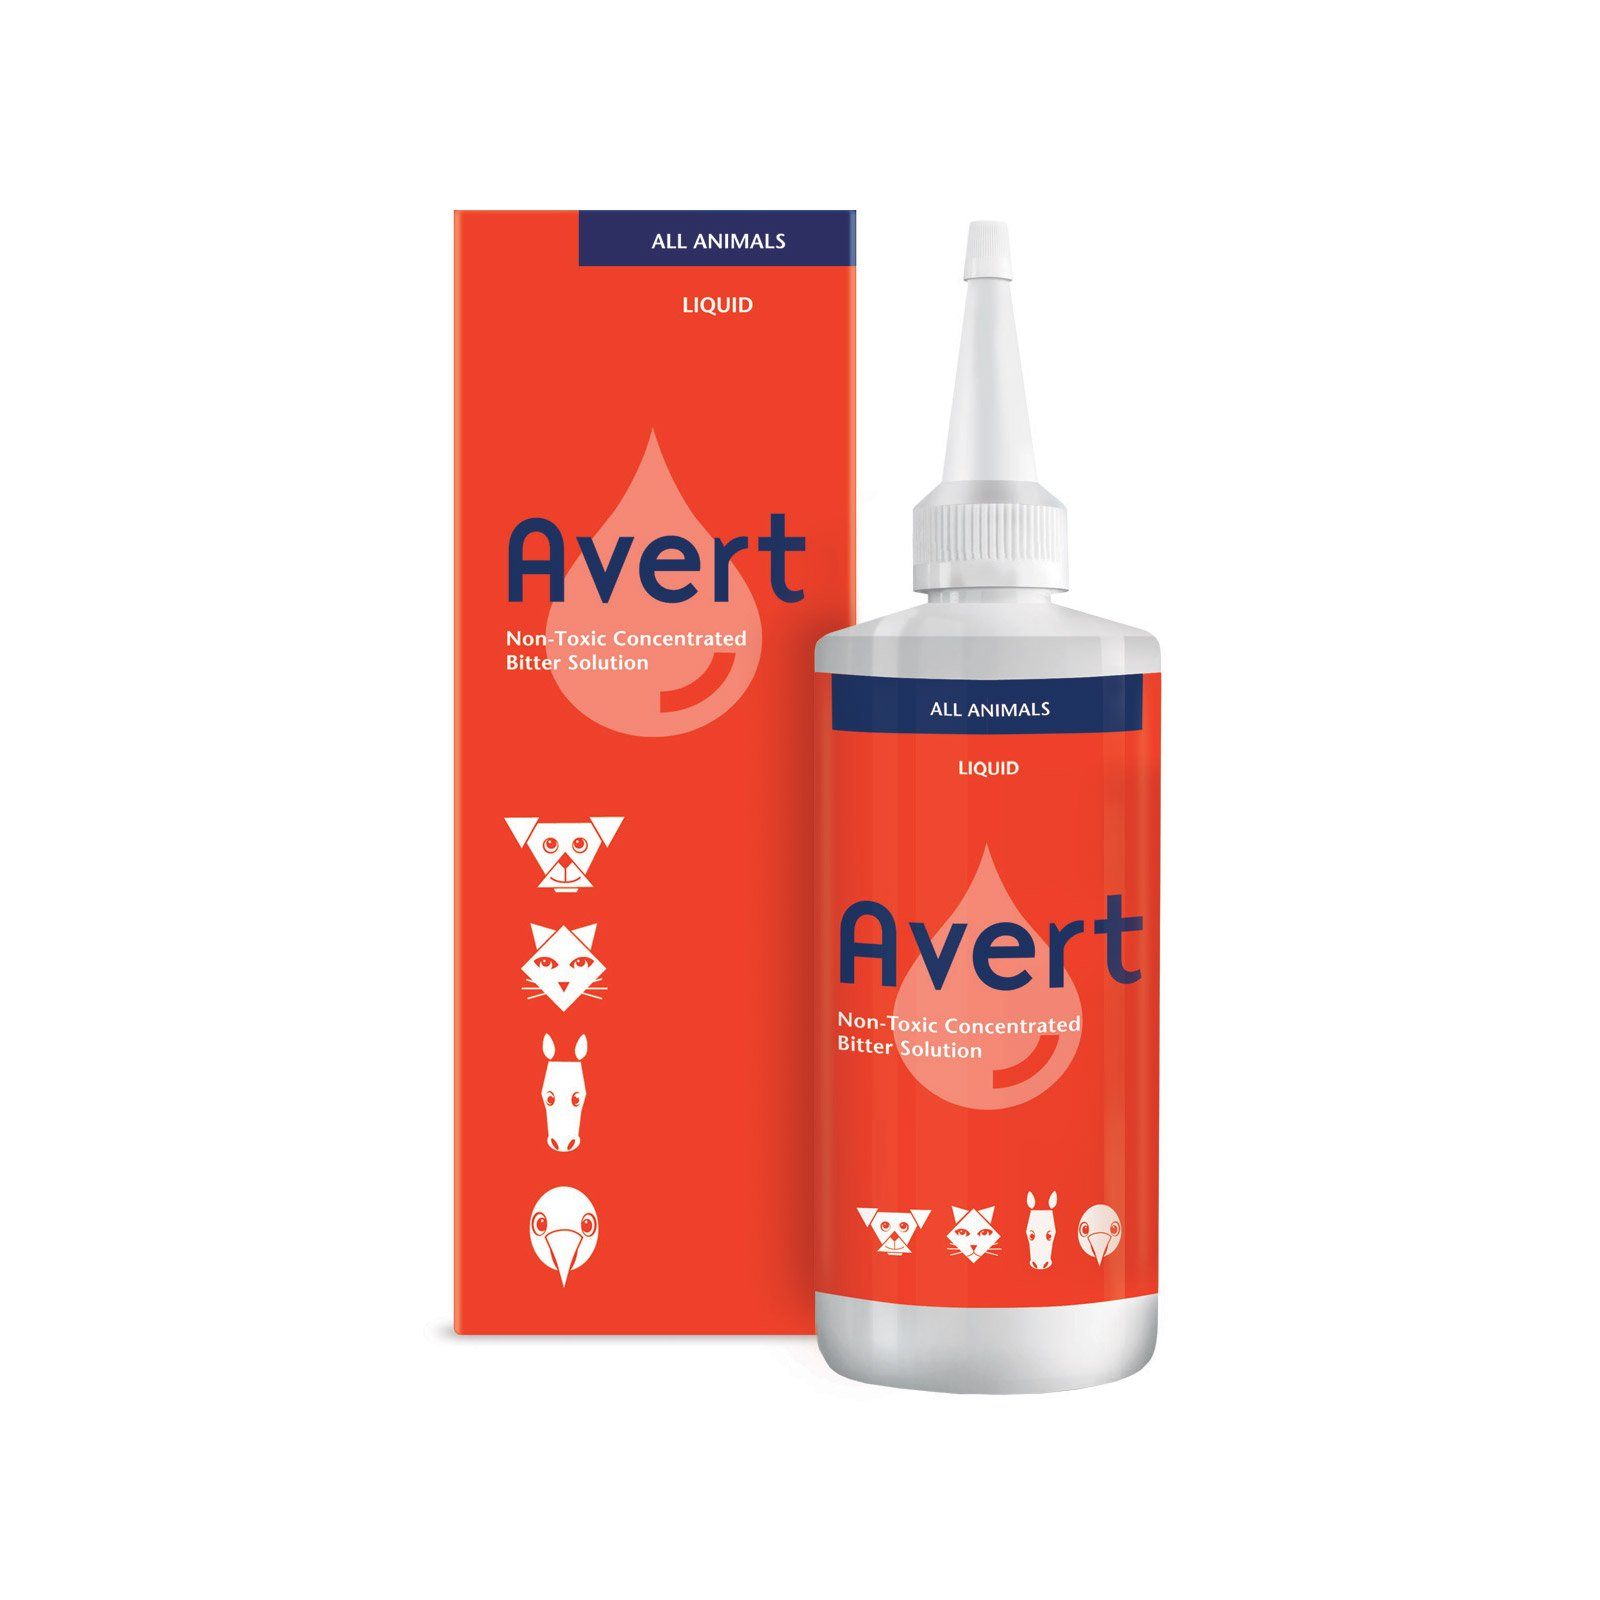 Buy Avert Bitter Solution for Dogs